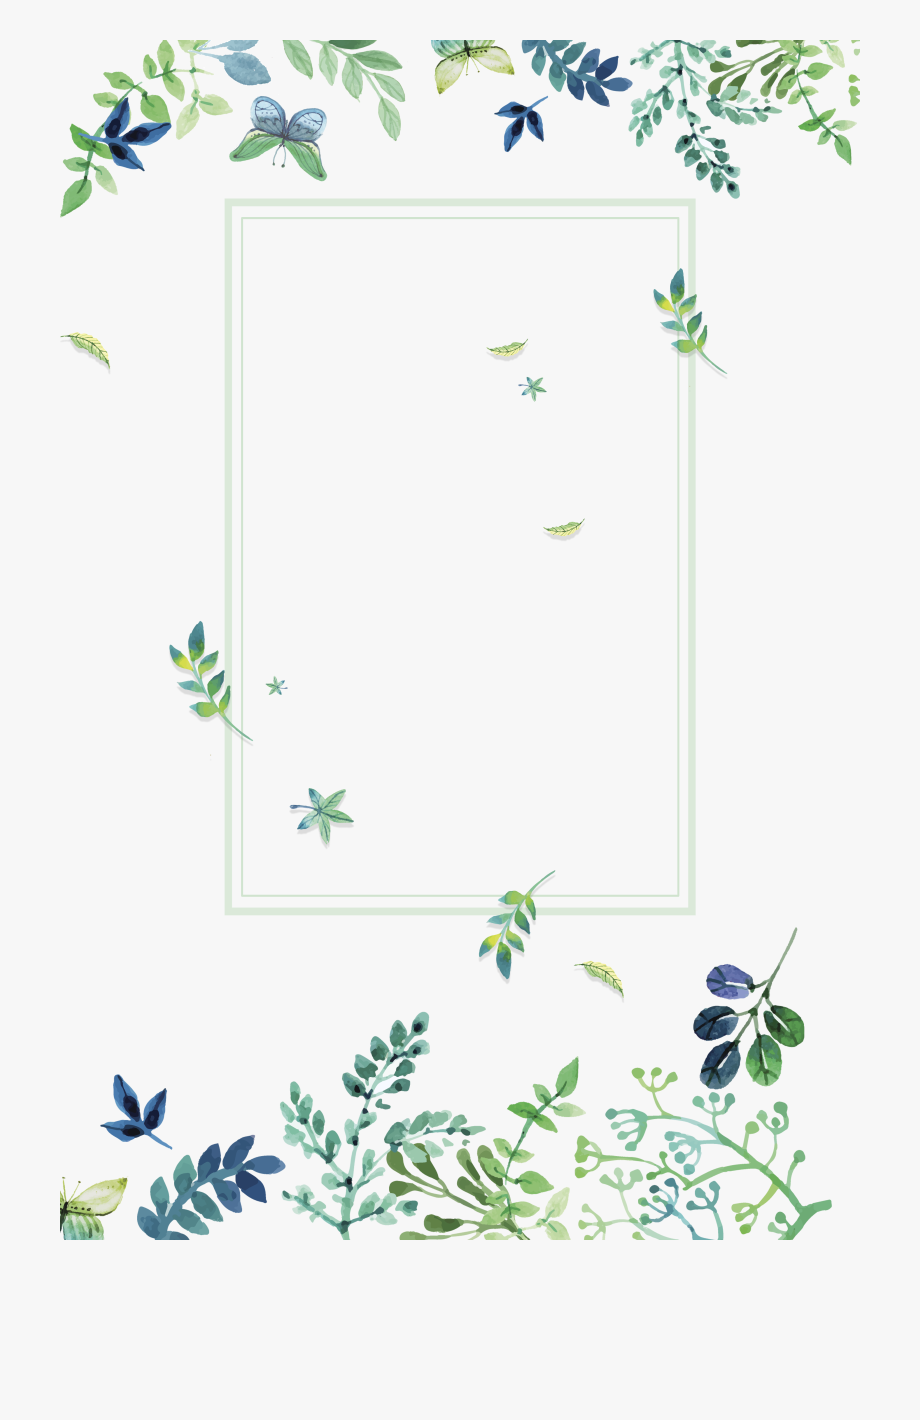 Texture Green Small Fresh Flowers Border Clipart.